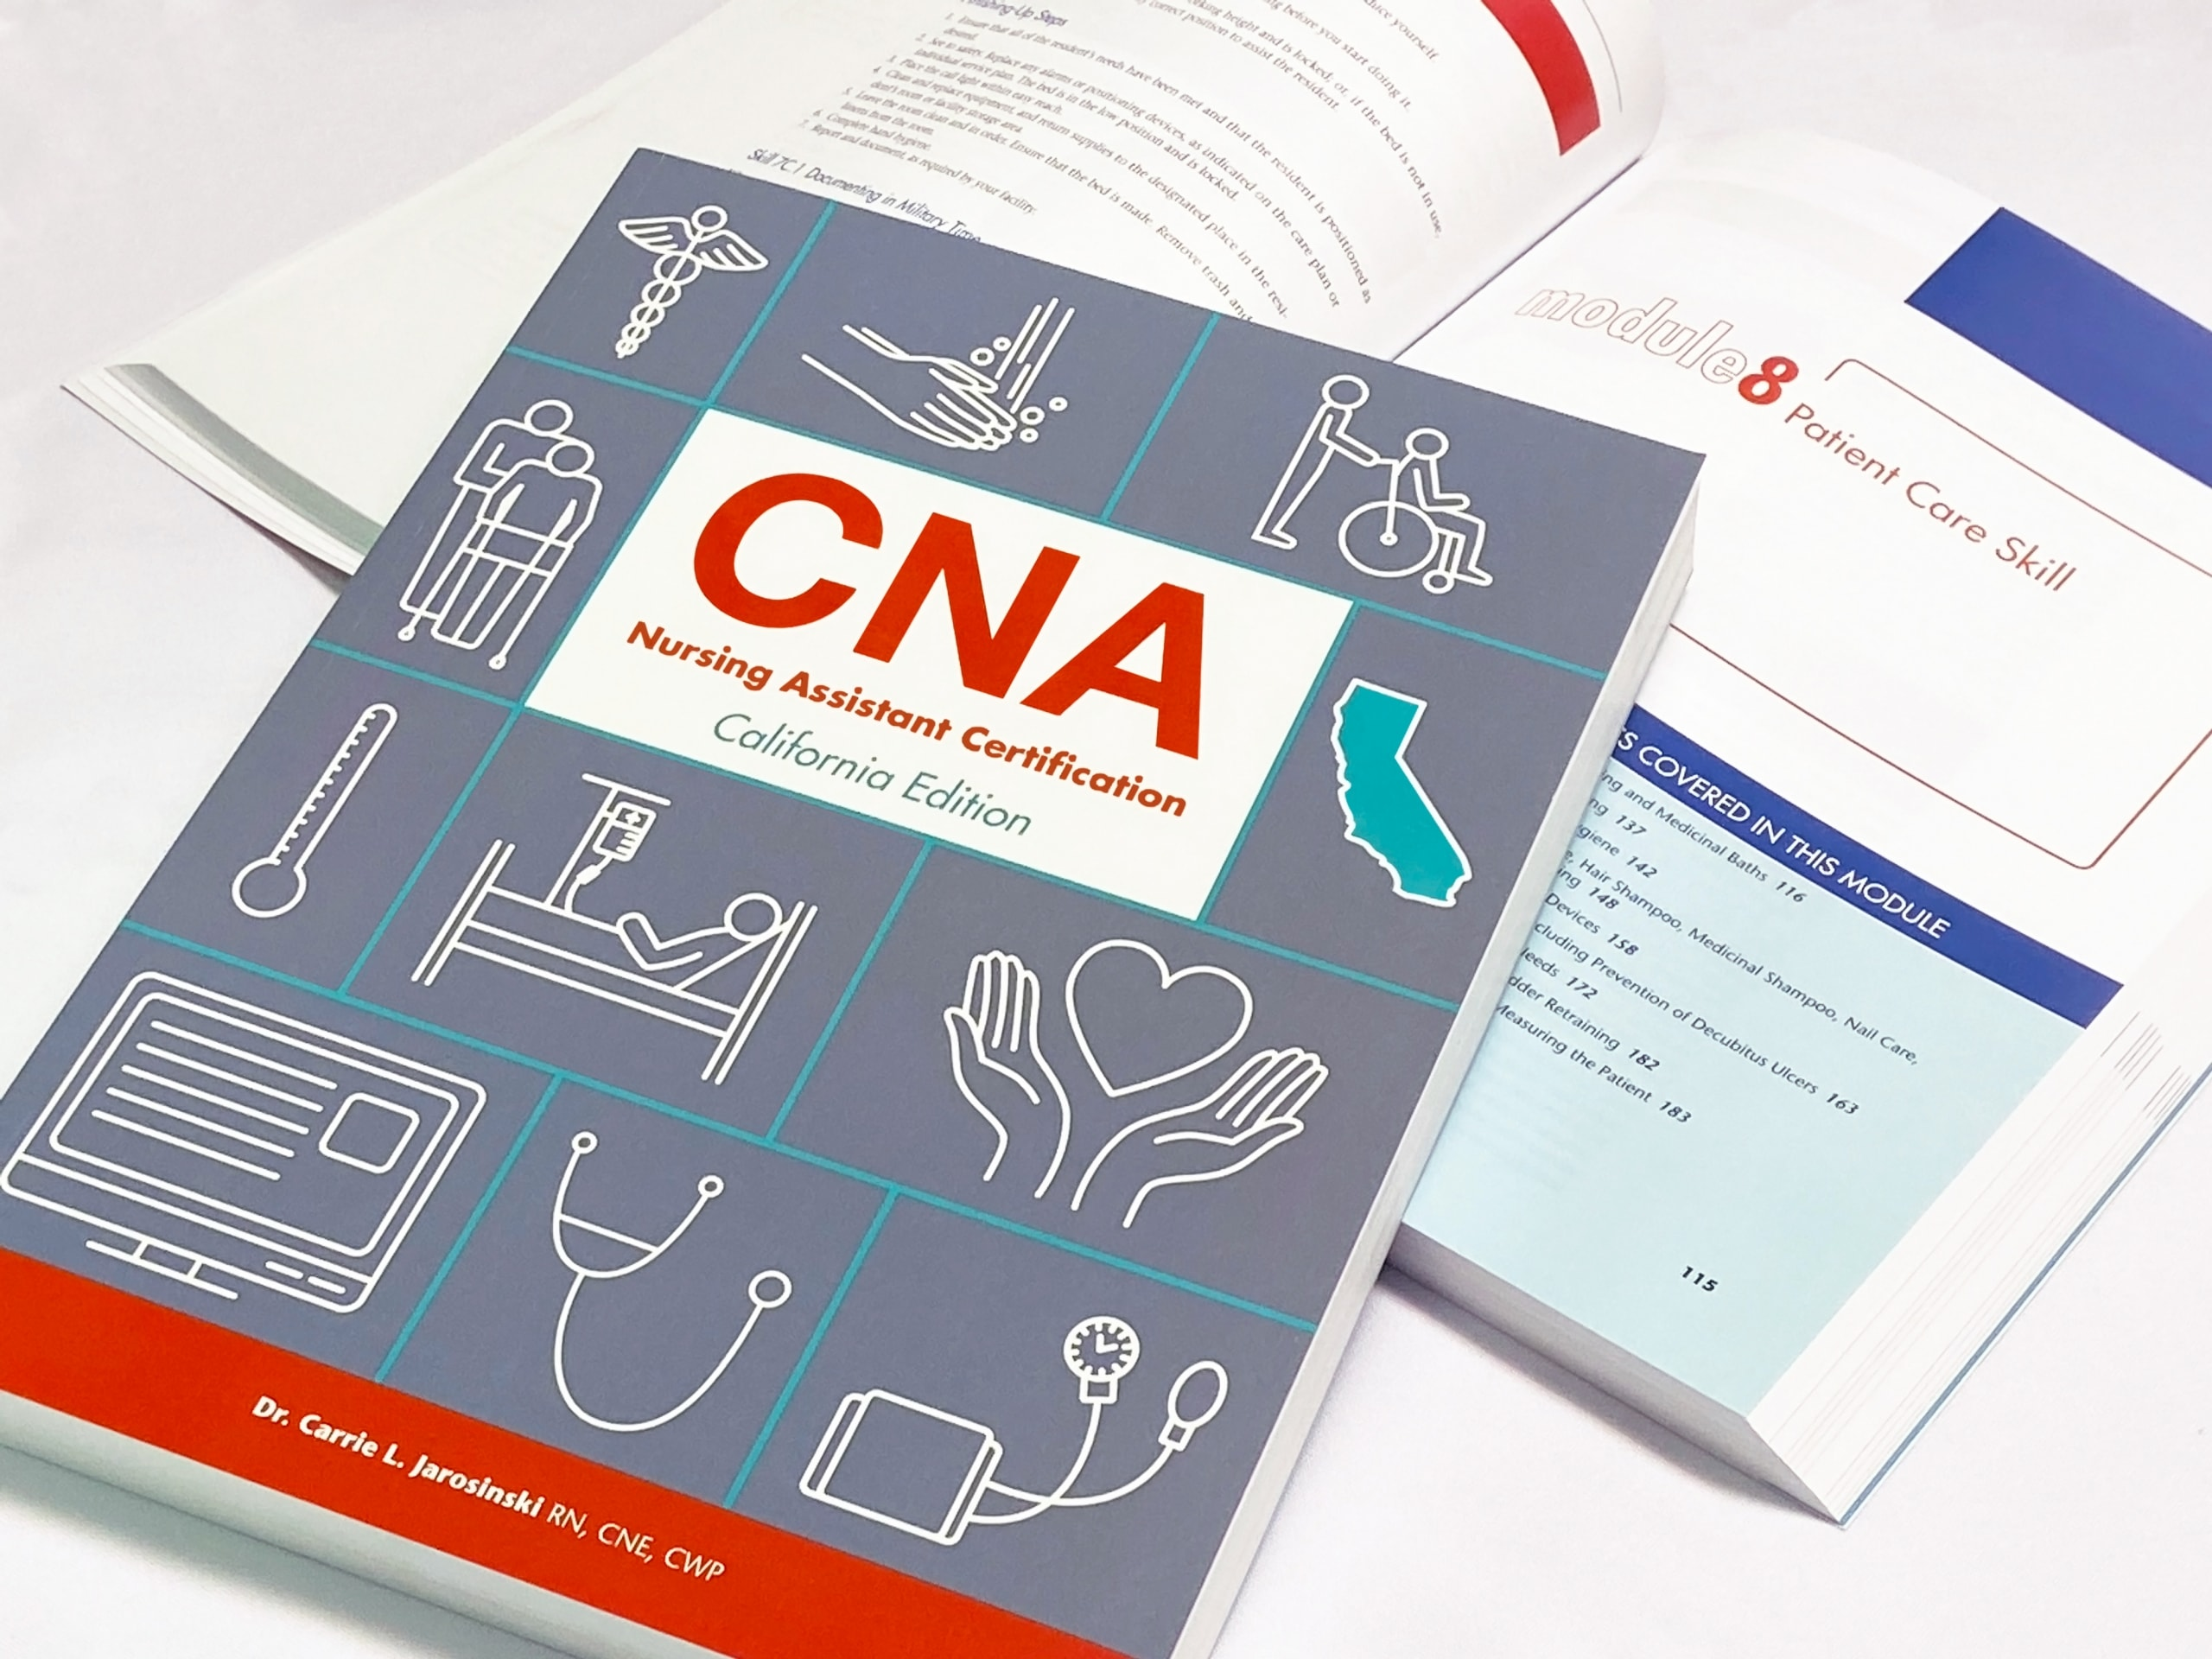 CNA Nursing Assistant Certification California Edition